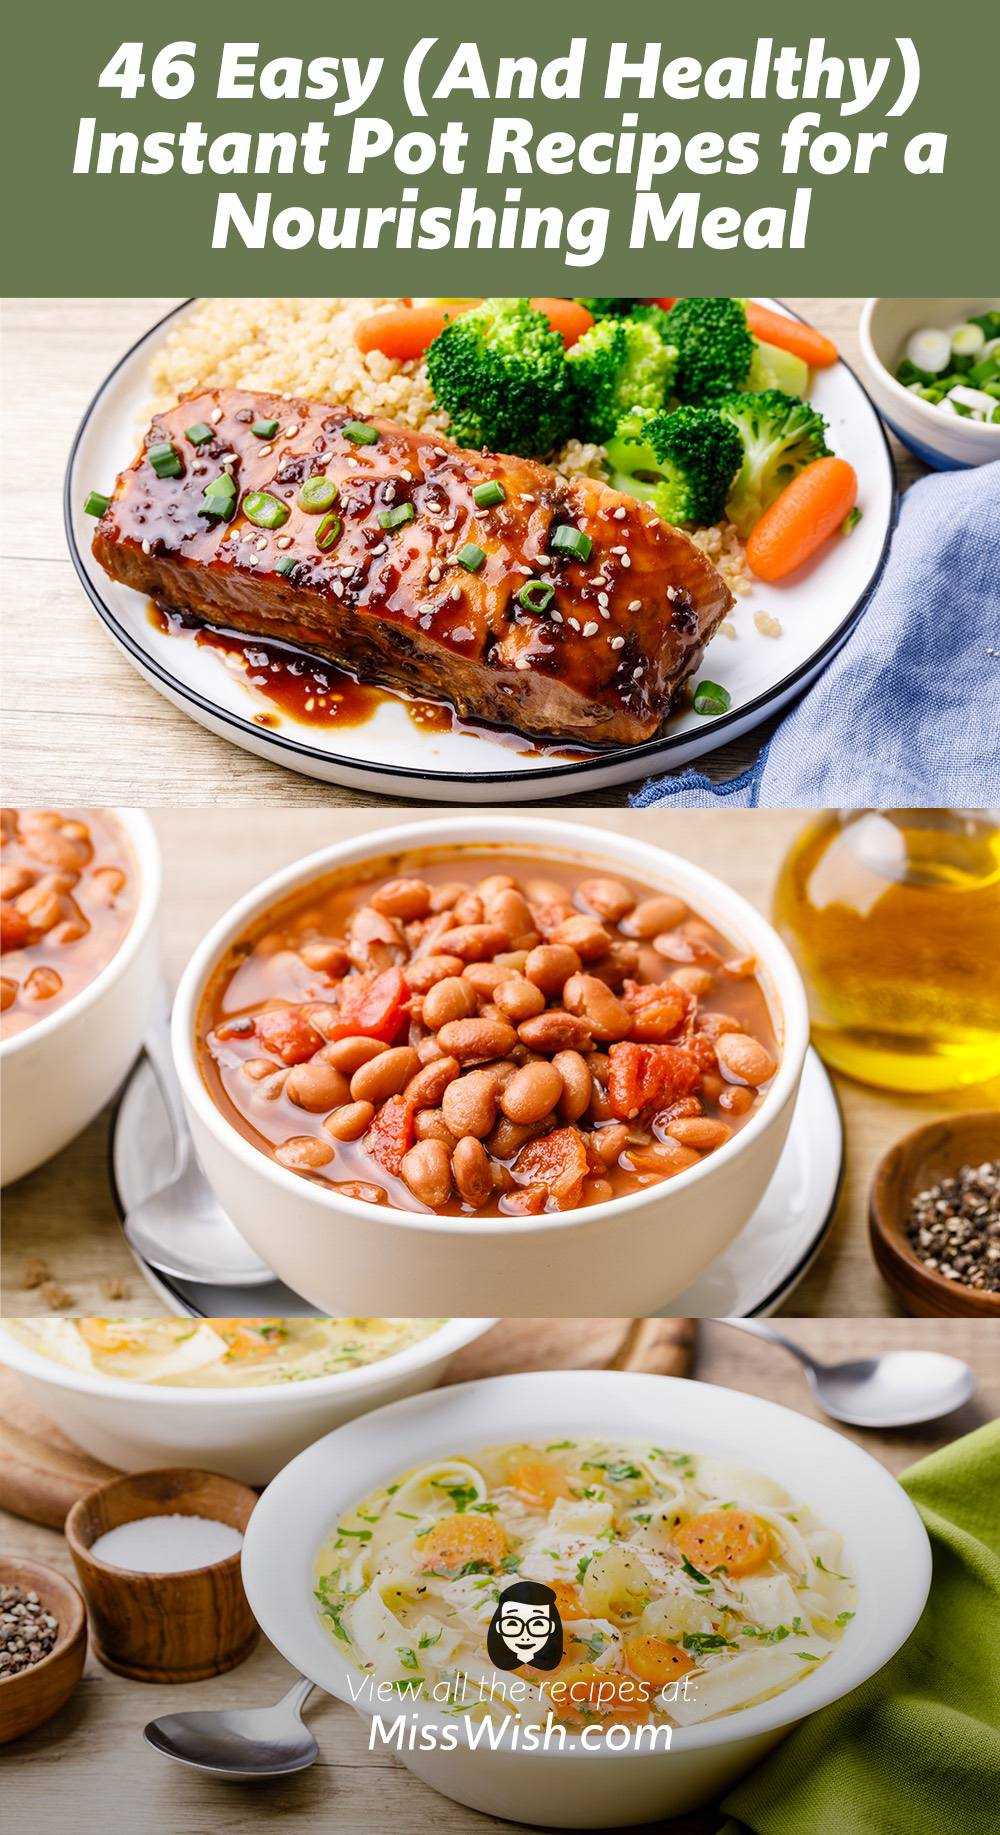 46 Easy and Healthy Instant Pot Recipes for a Nourishing Meal